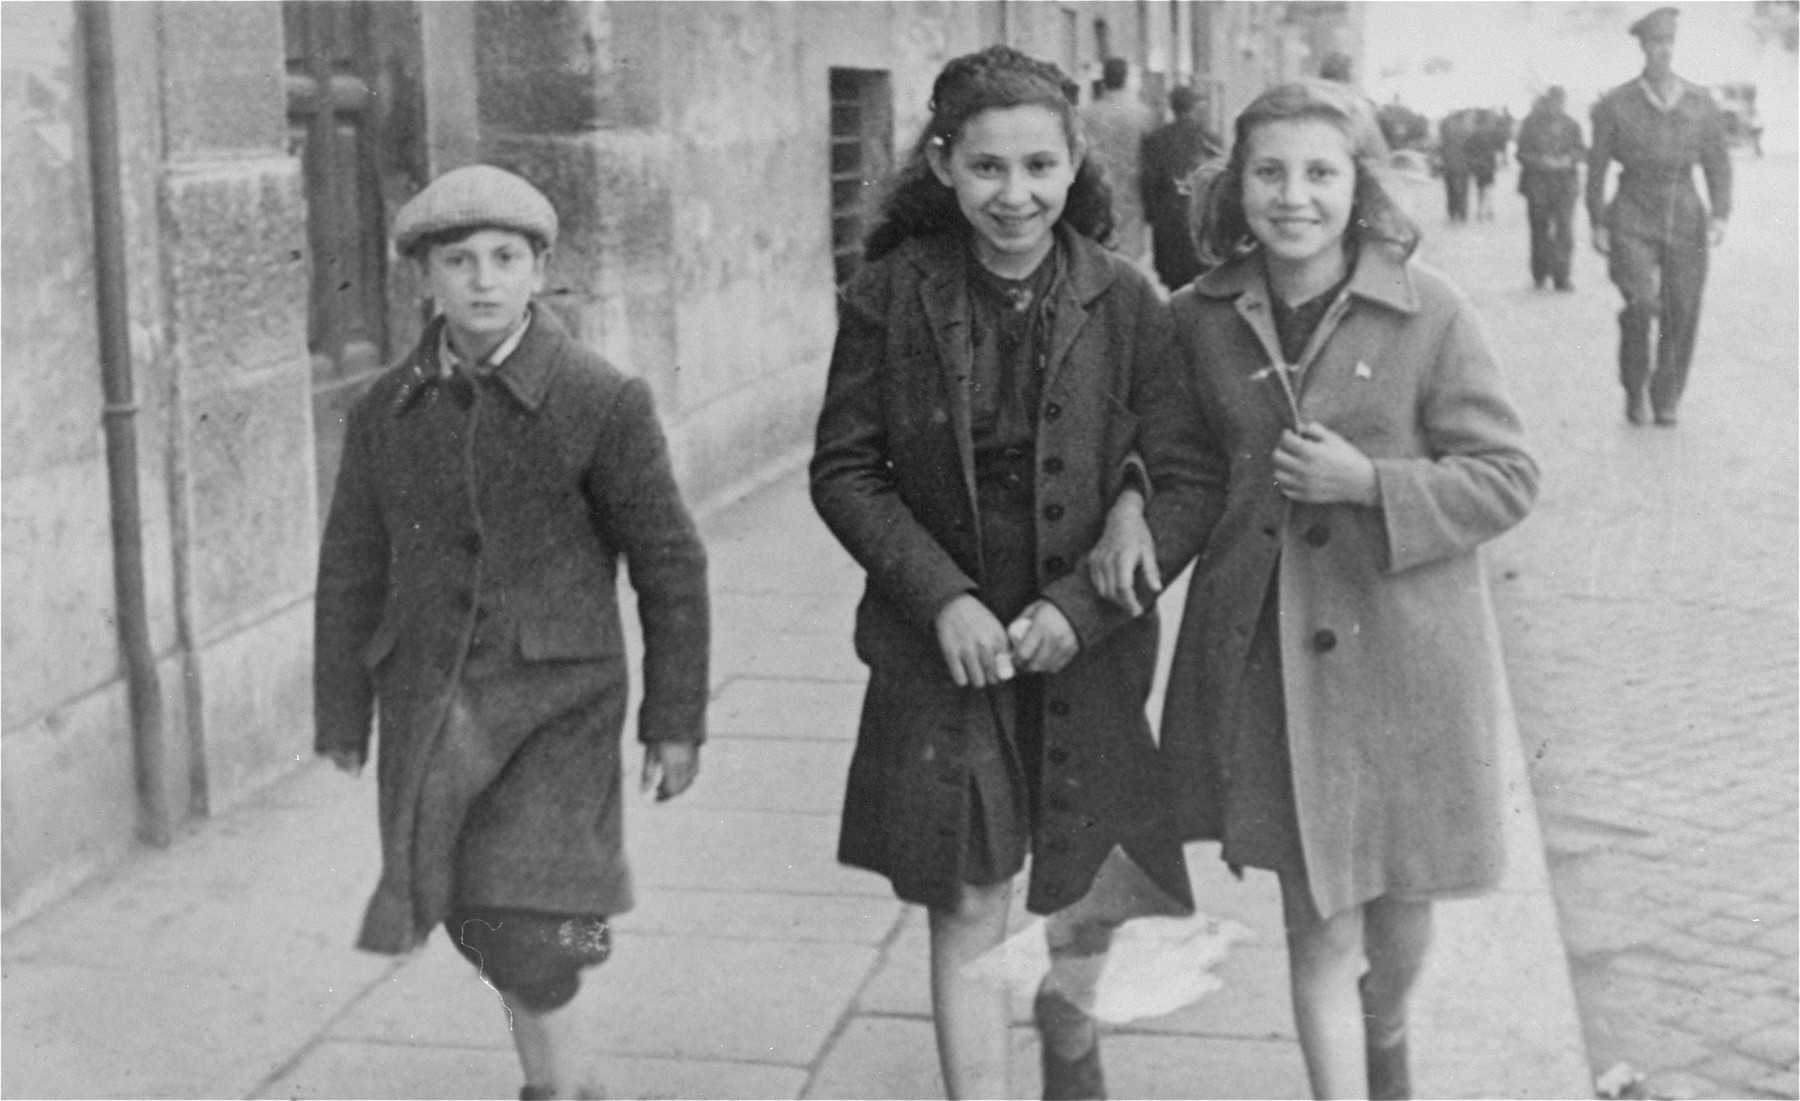 Hanna Rawicz (middle) walks along a street in Rome with two friends.